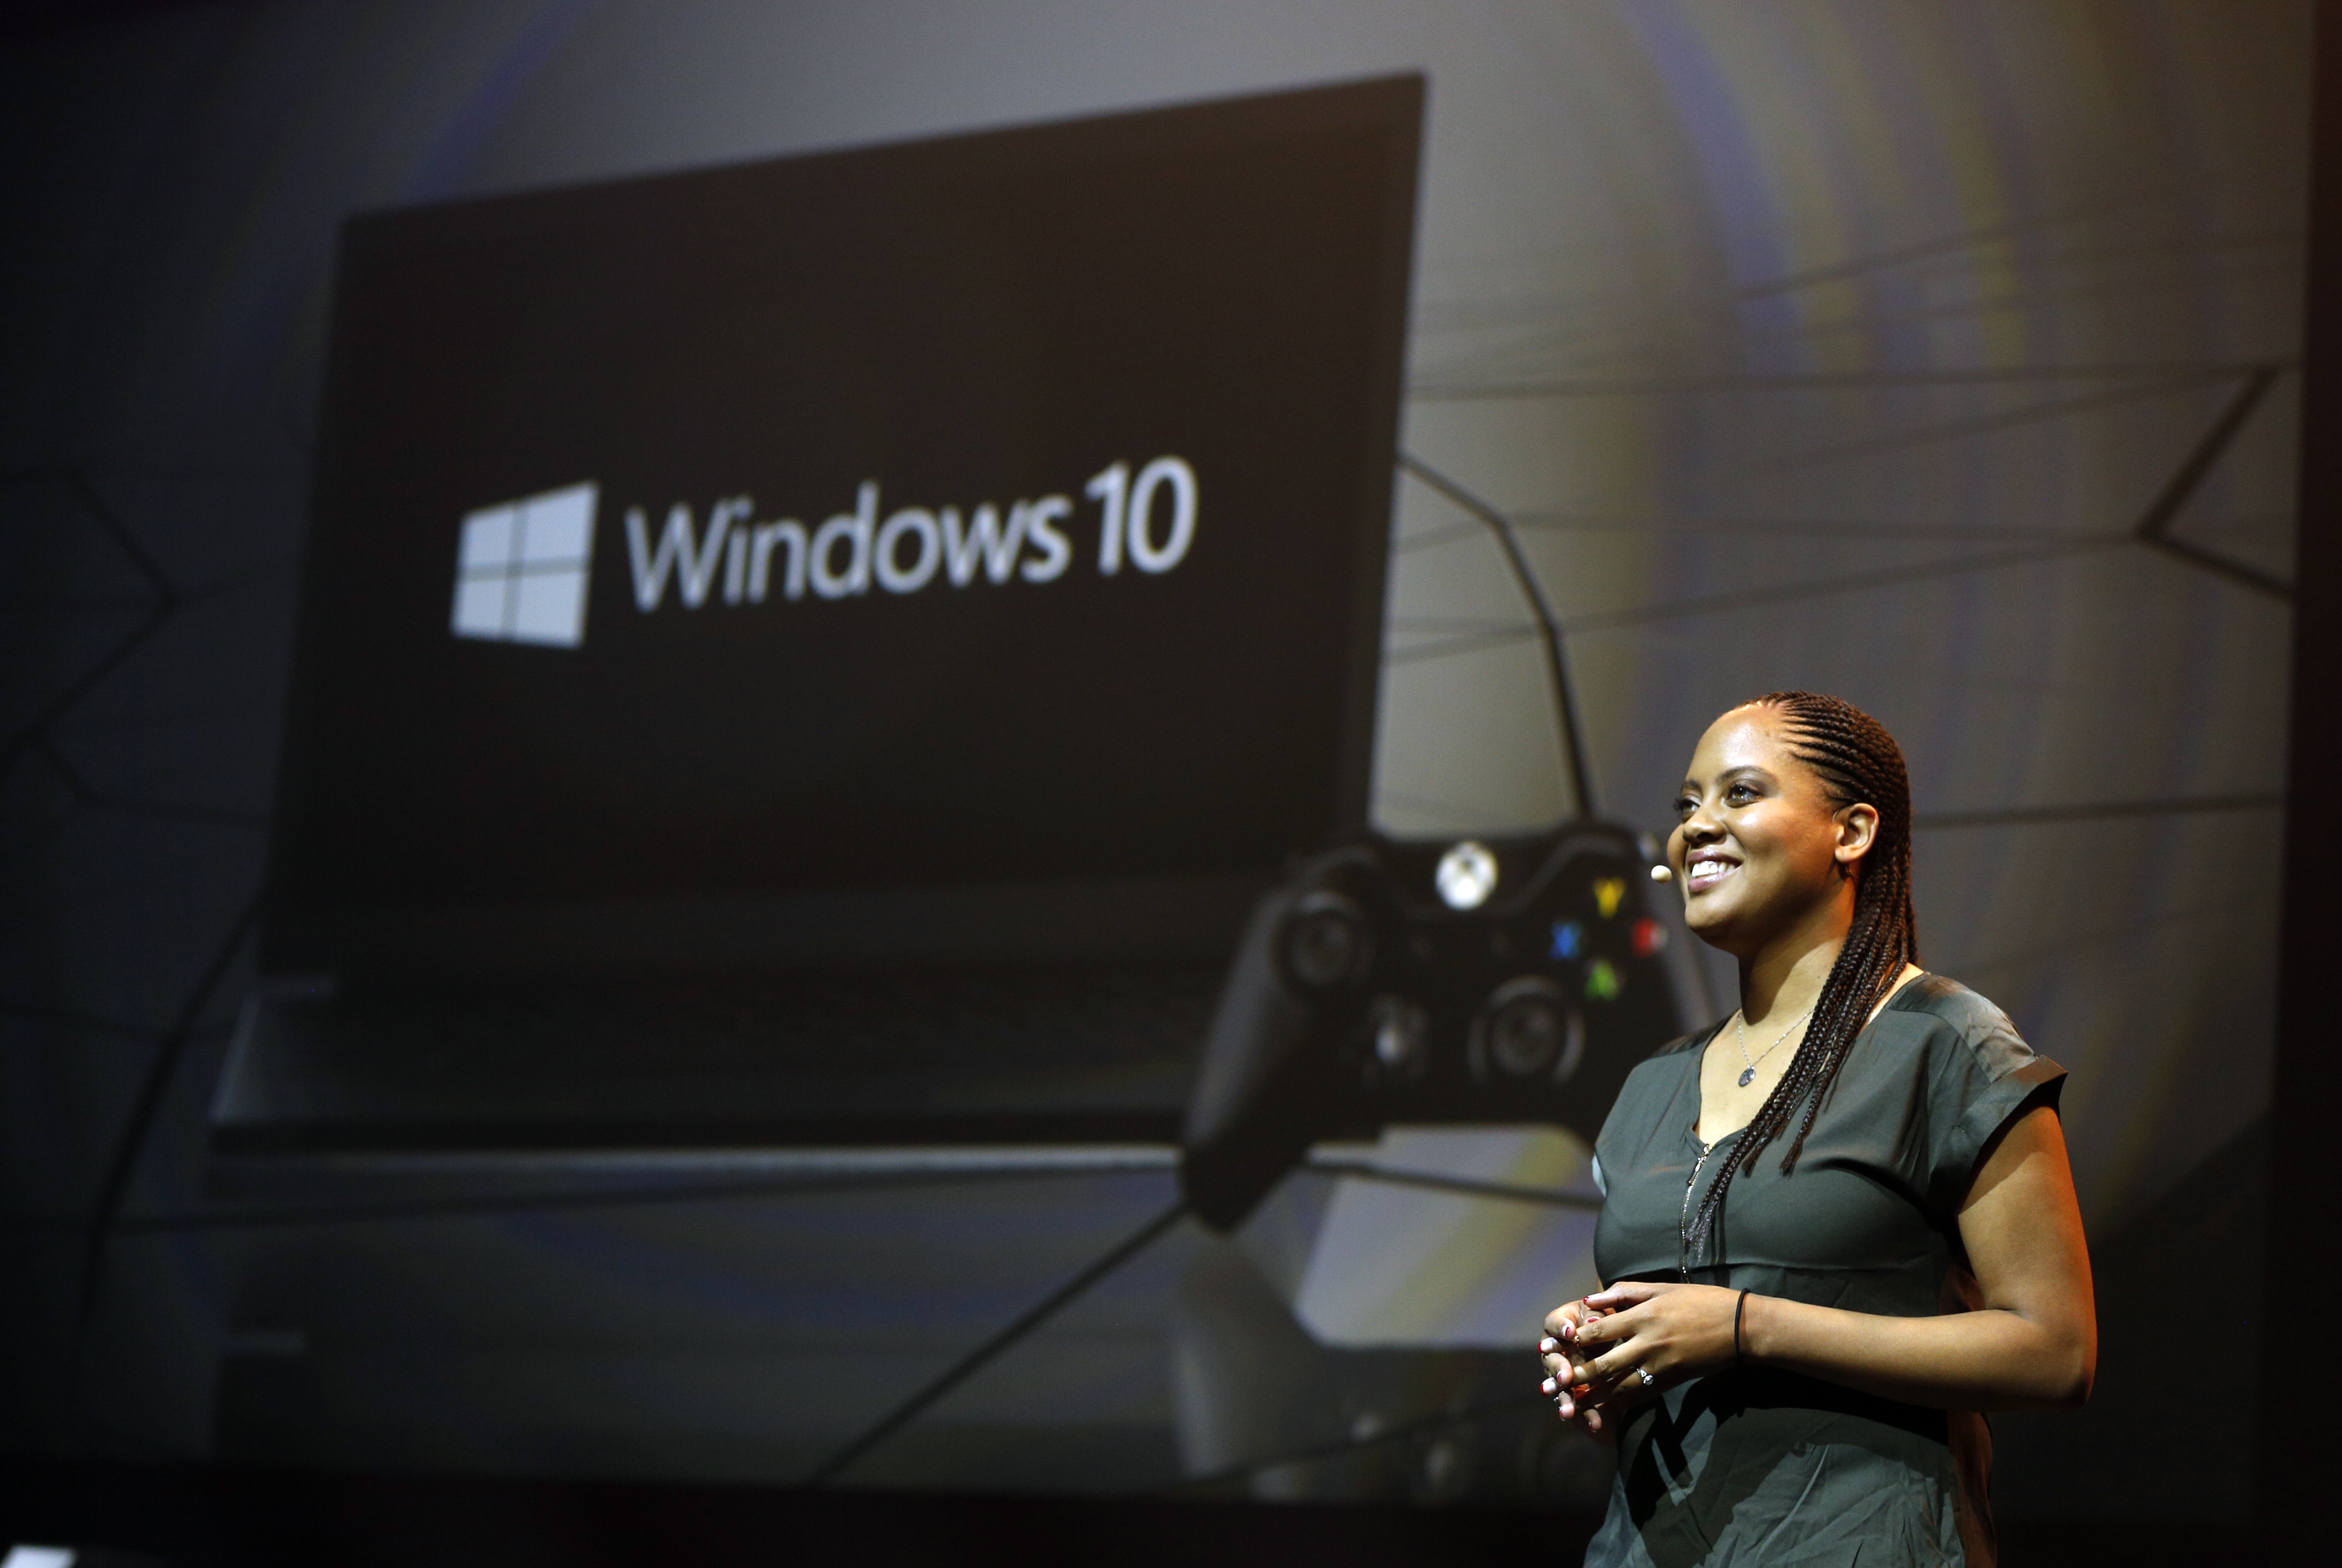 Jasmine Lawrence talks about Xbox and Windows 10 at Gamescom 2015